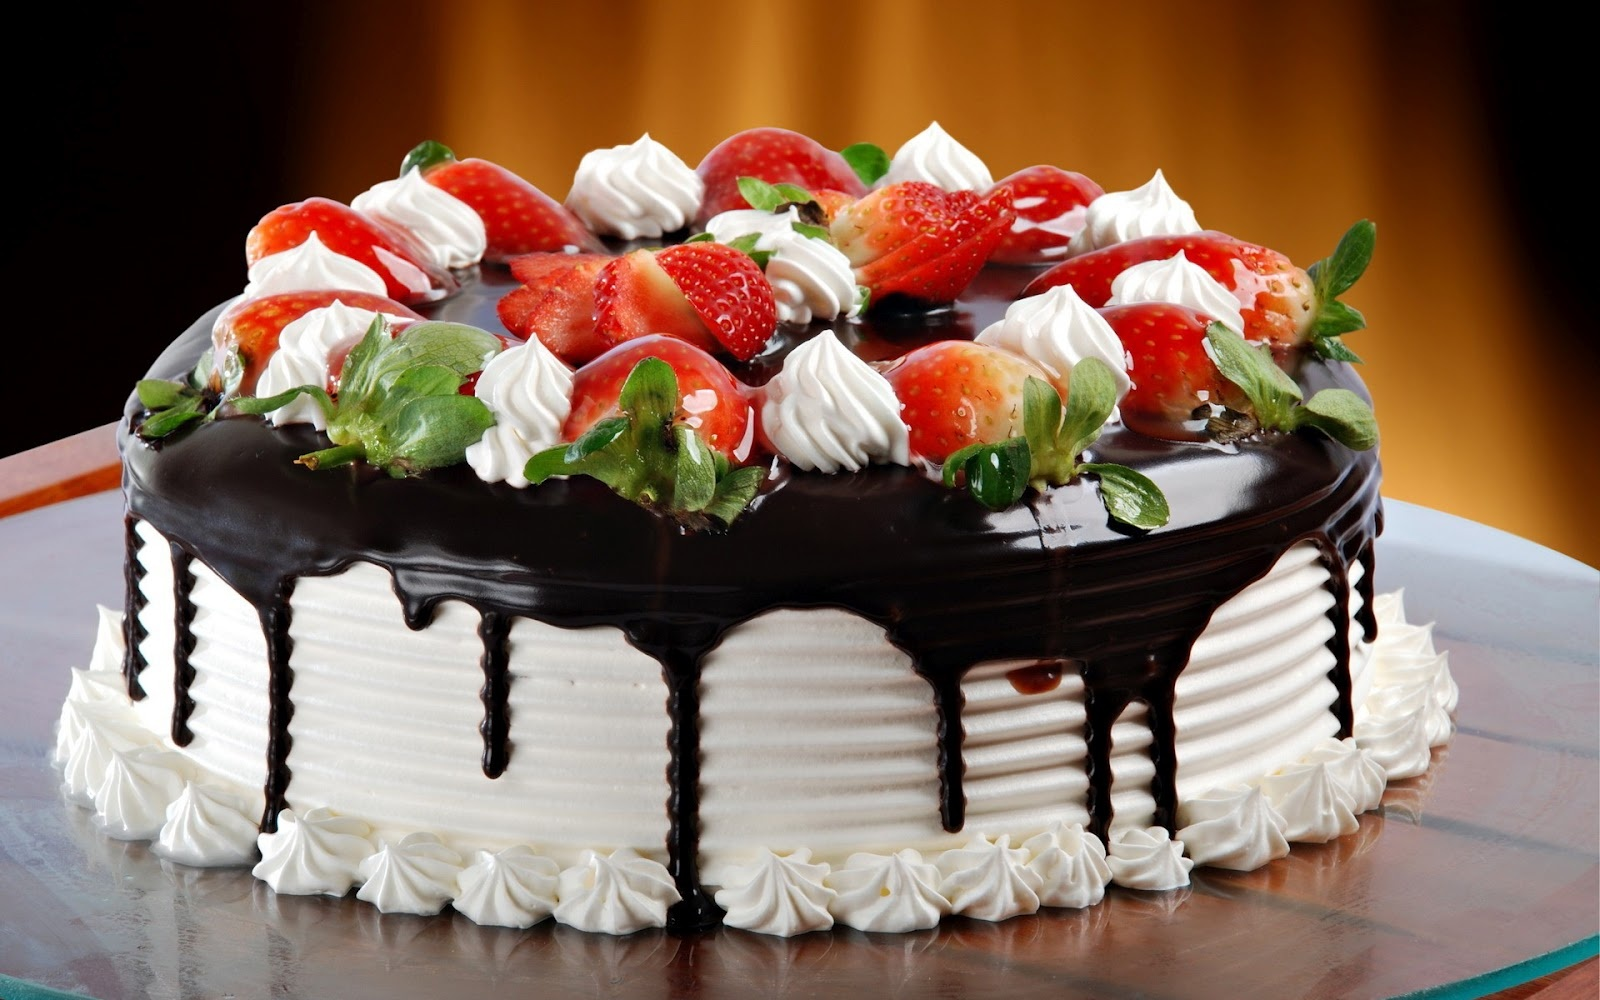 Buy Online Cakes Which Are Made Up With Pure Chocolate Midnight Delivery Available Cake Shop In Pune